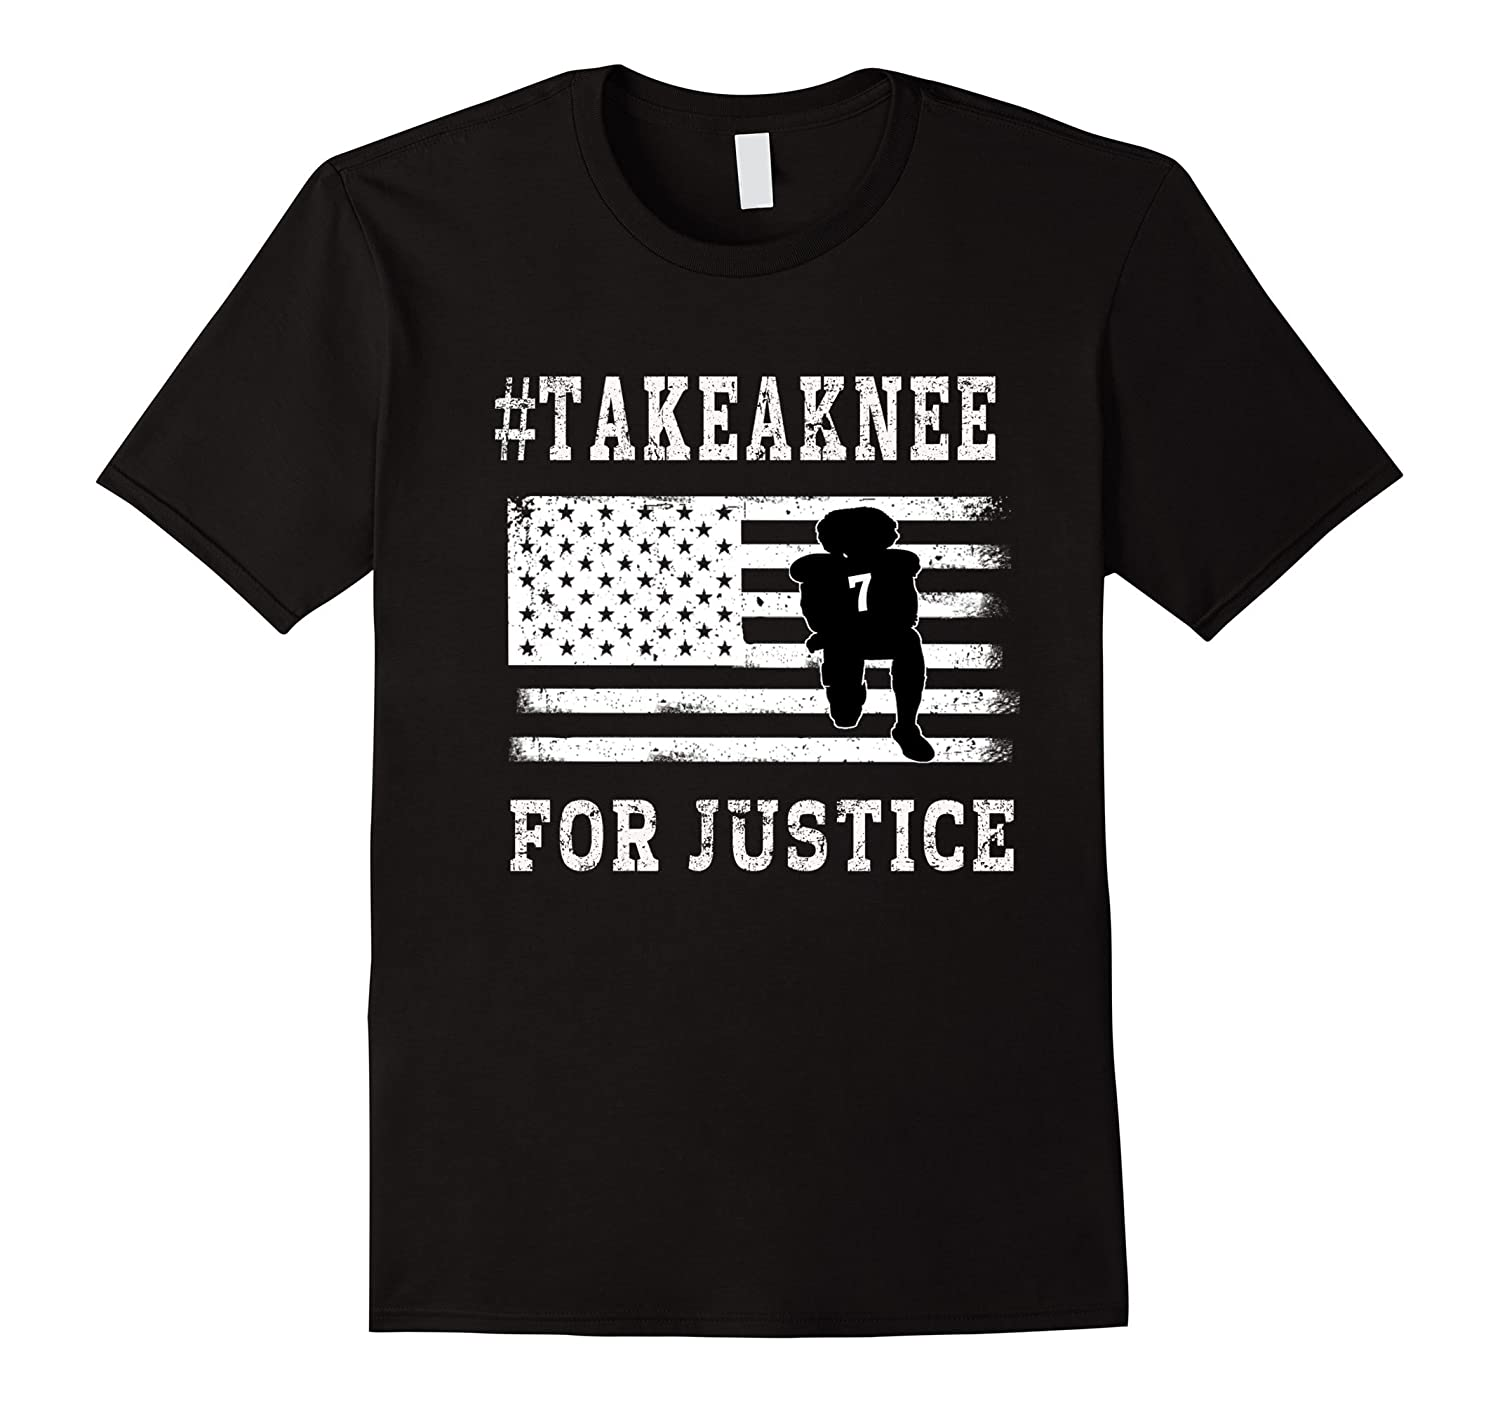 Take A Knee Shirt For Justice #ImwithKap Black Equality Tees-FL